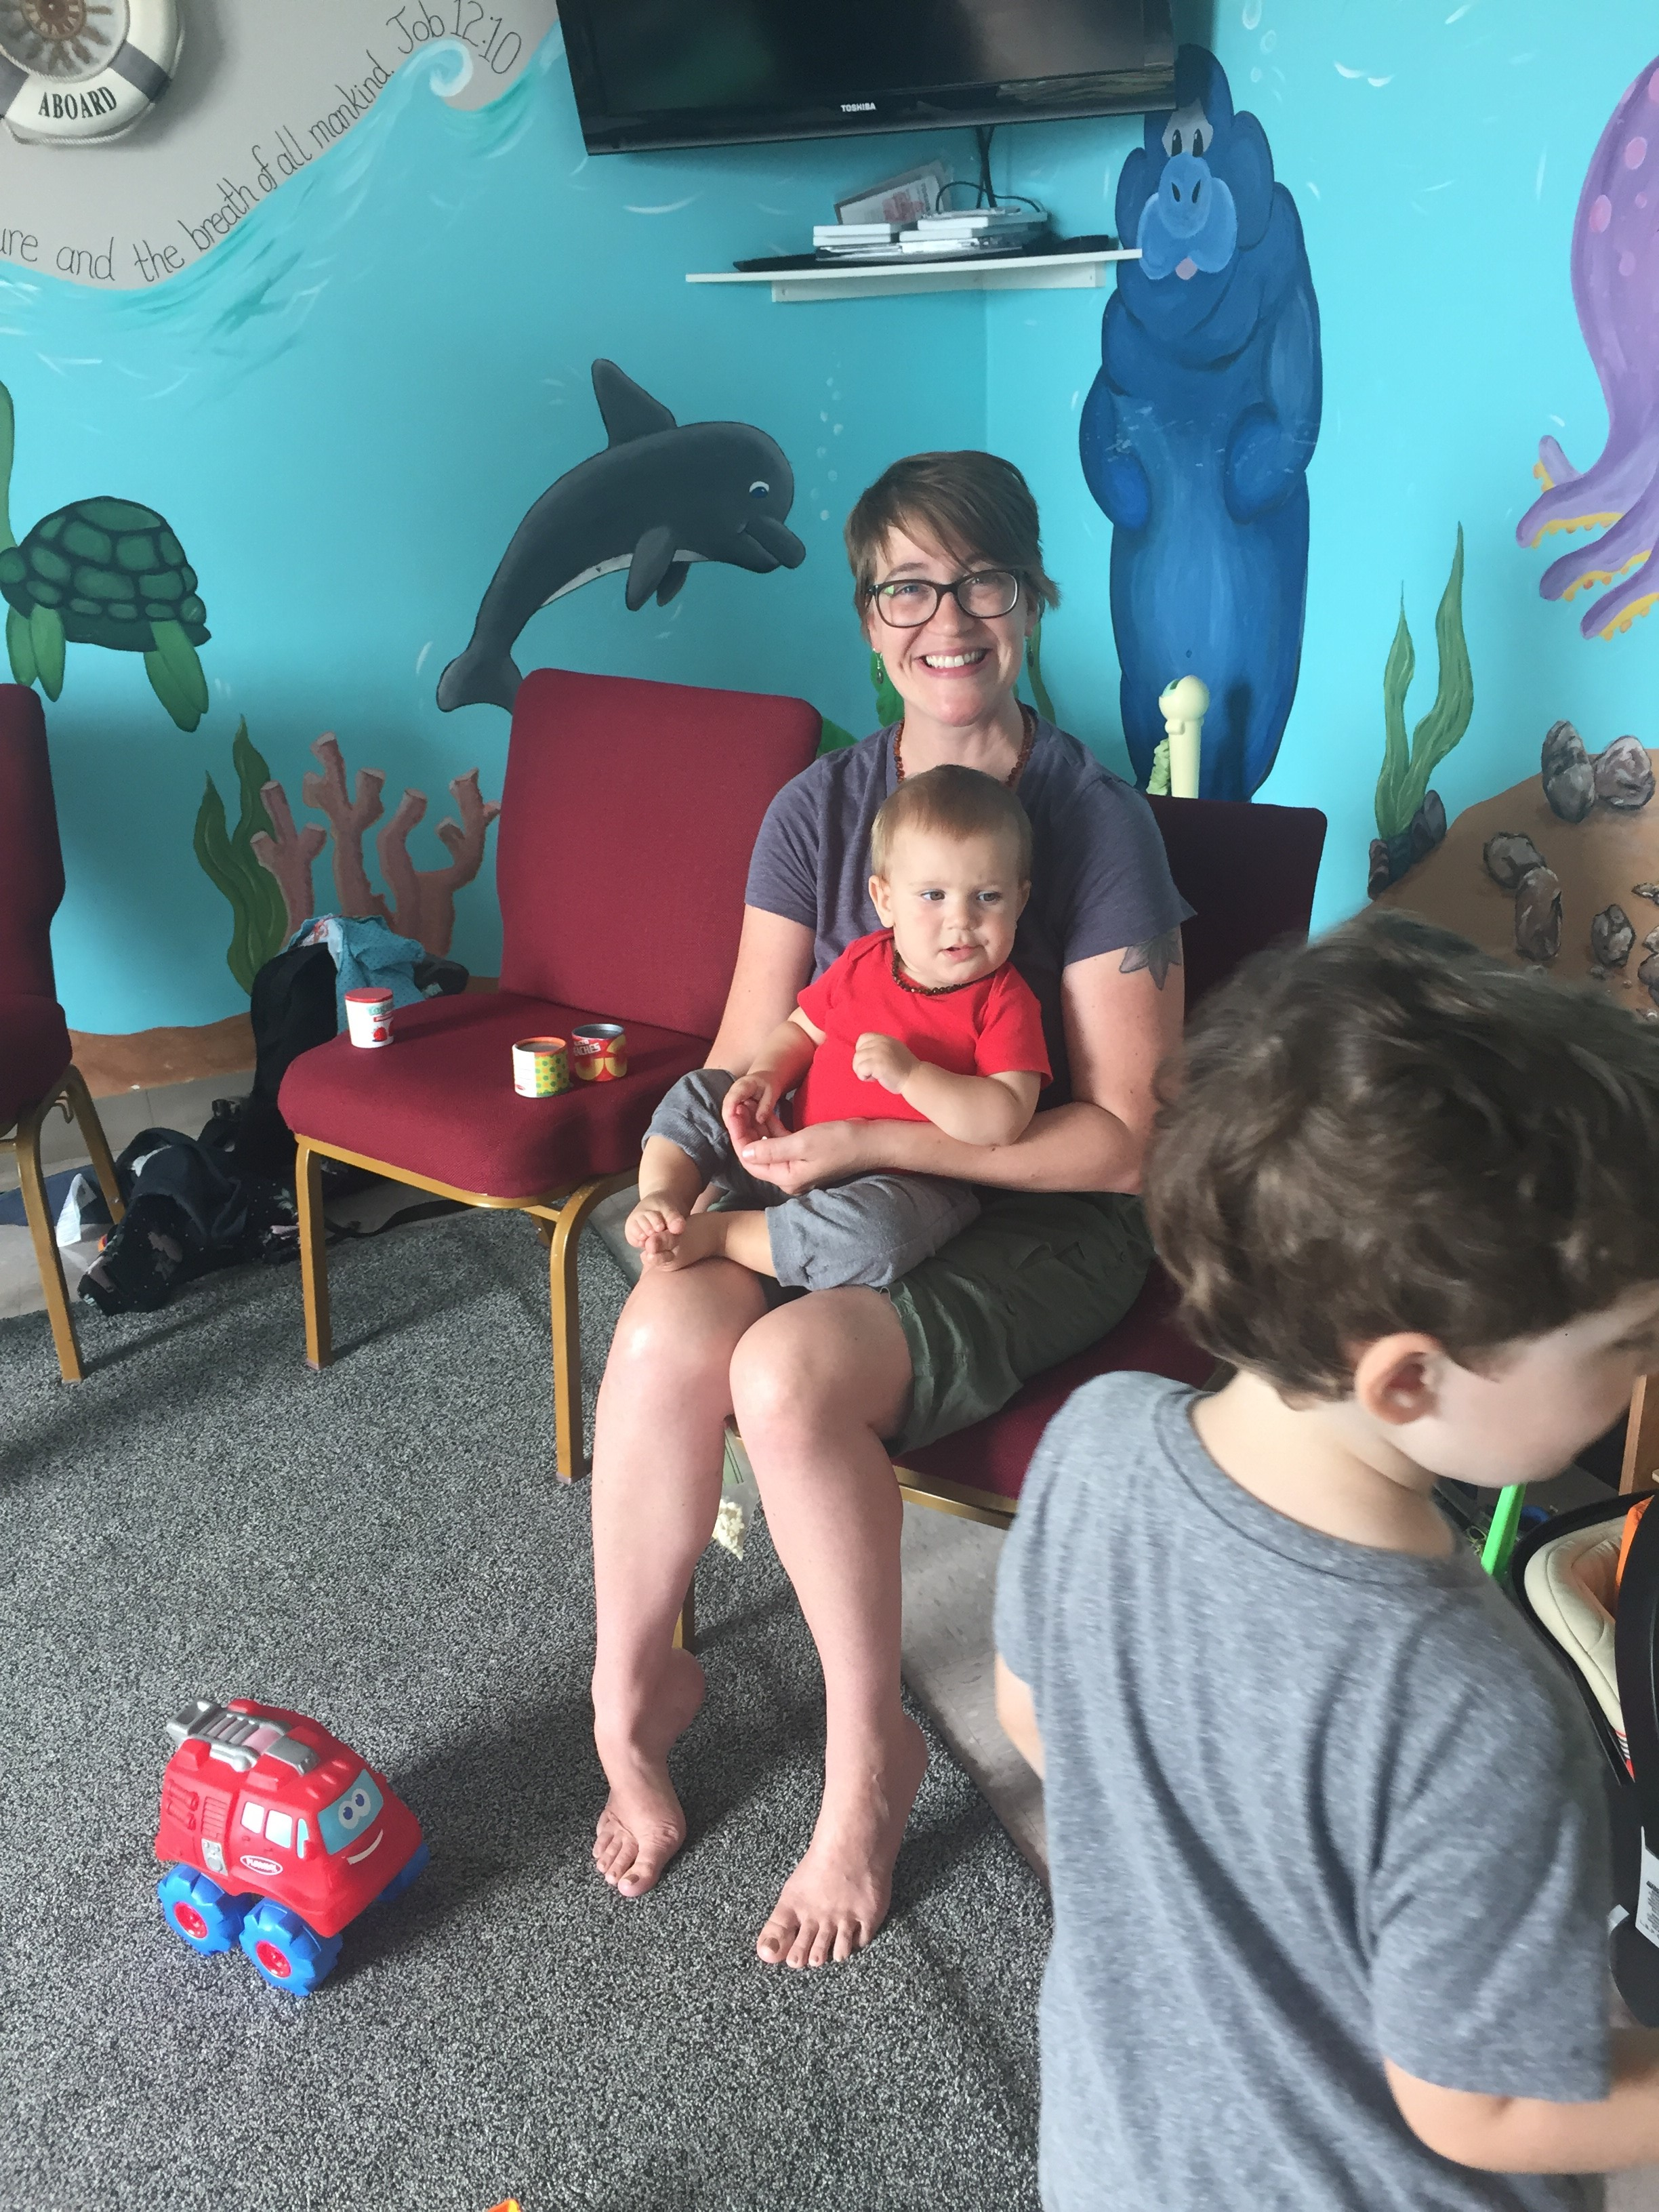 All smiles at the Breastfeeding Cafe in Oswego